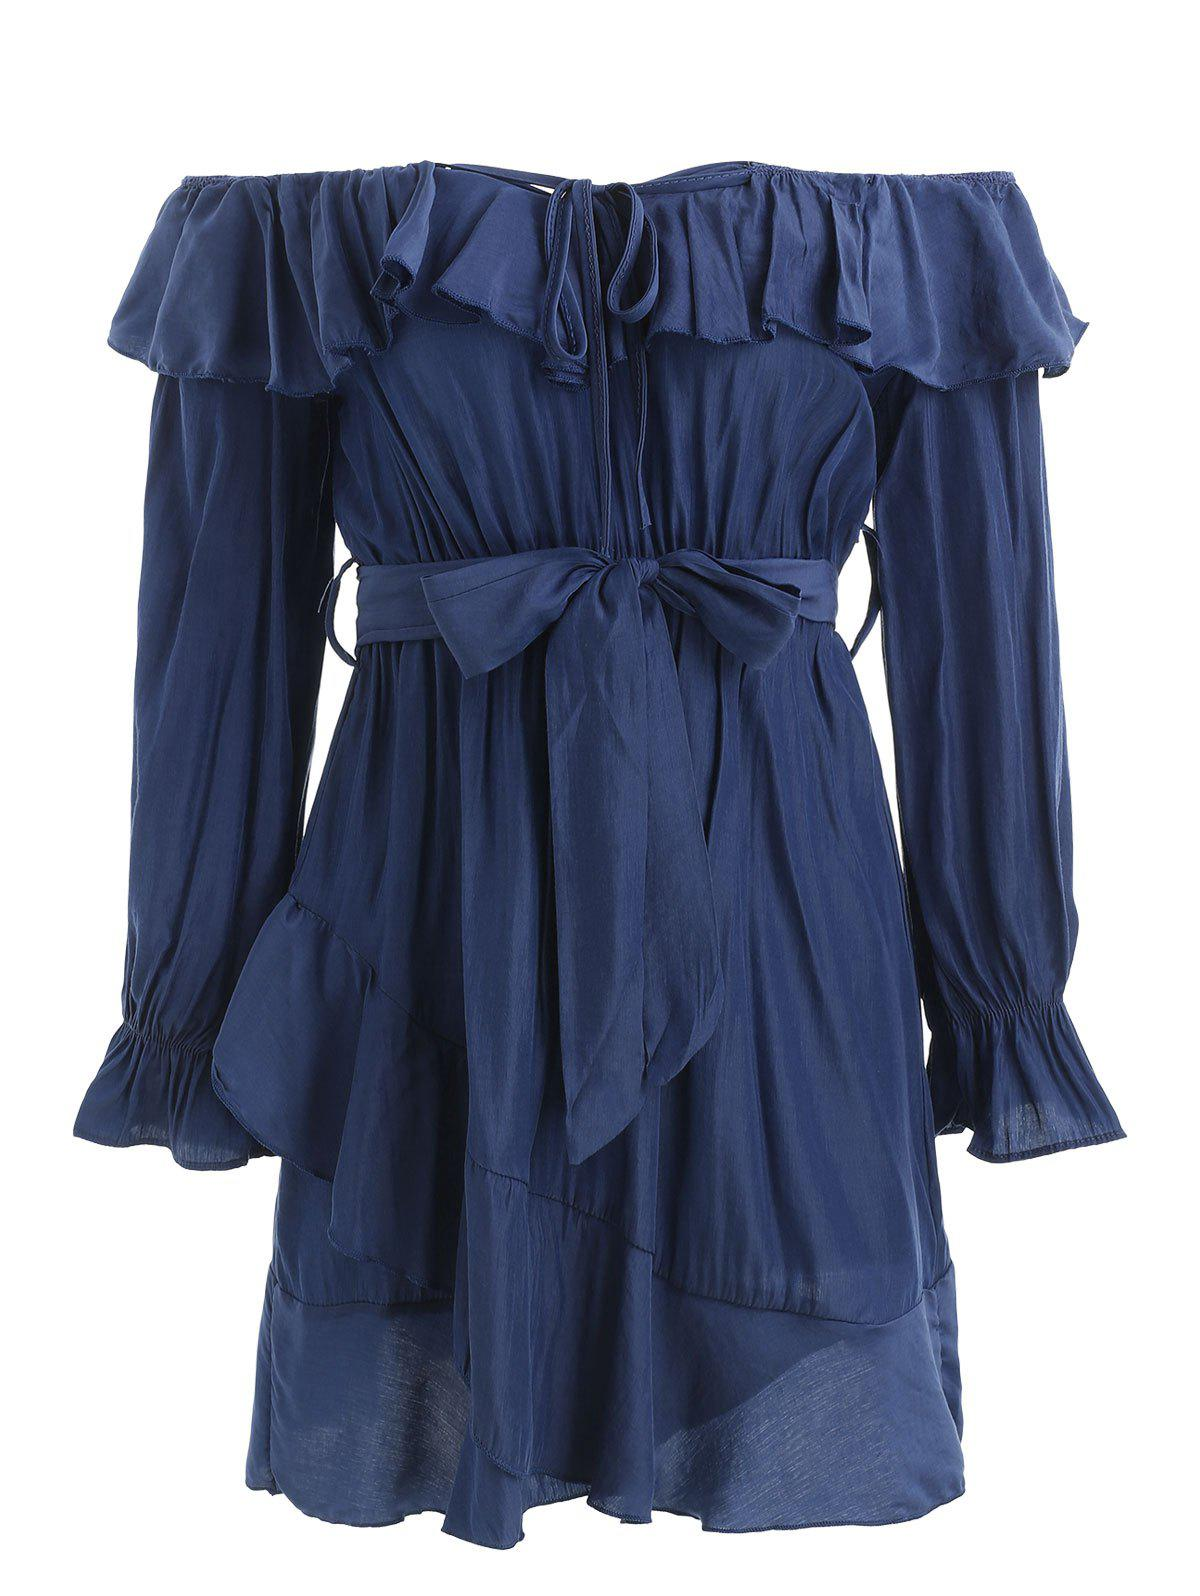 Buy Off The Shoulder Full Sleeve Ruffled Dress